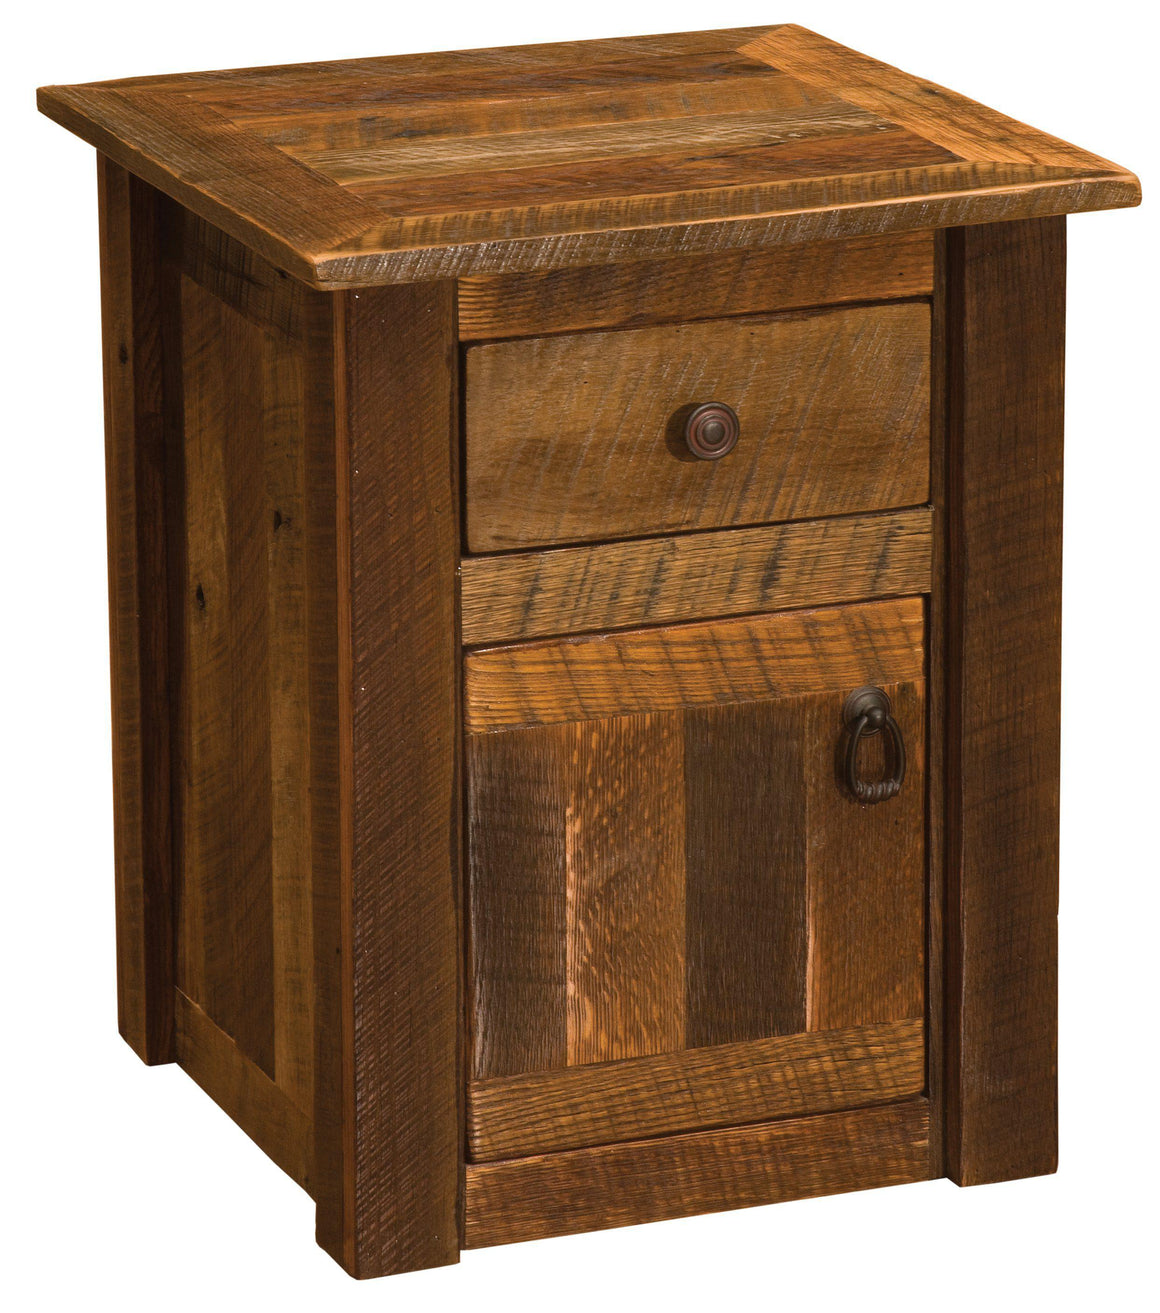 Barnwood Enclosed End Table - Barnwood Legs - Rustic Deco Incorporated